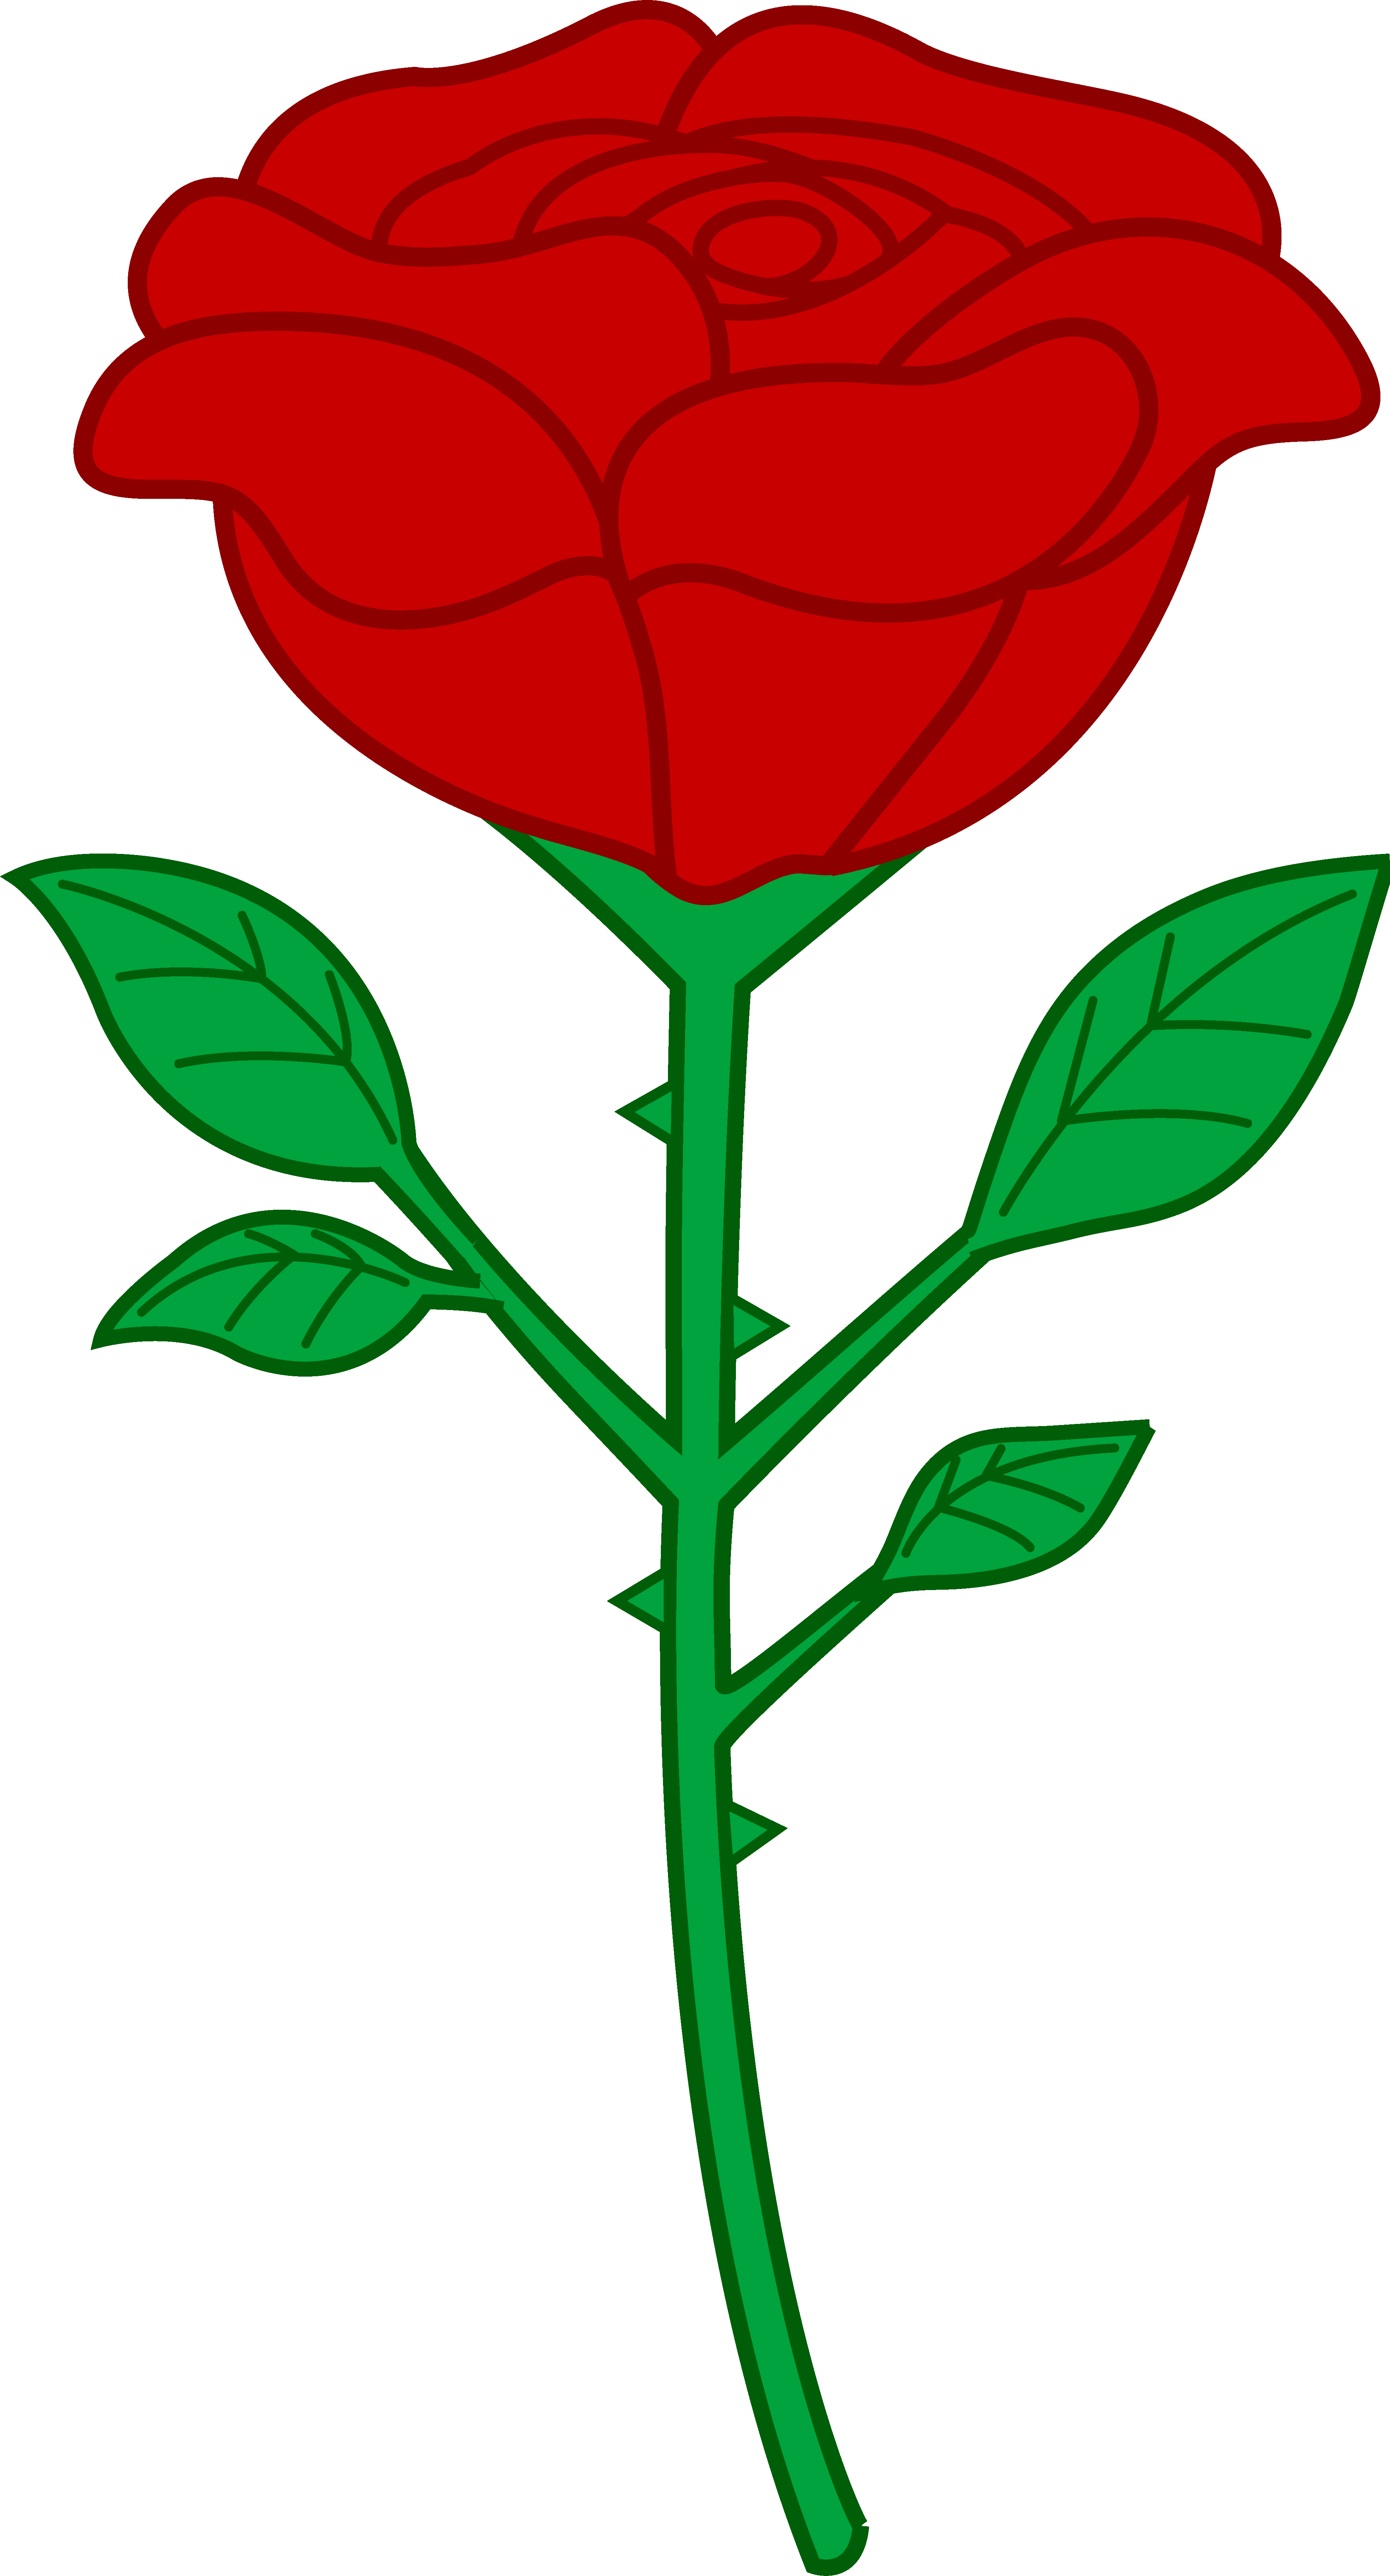 Clipart rosa jpg royalty free Free Red Rose Clipart, Download Free Clip Art, Free Clip Art on ... jpg royalty free